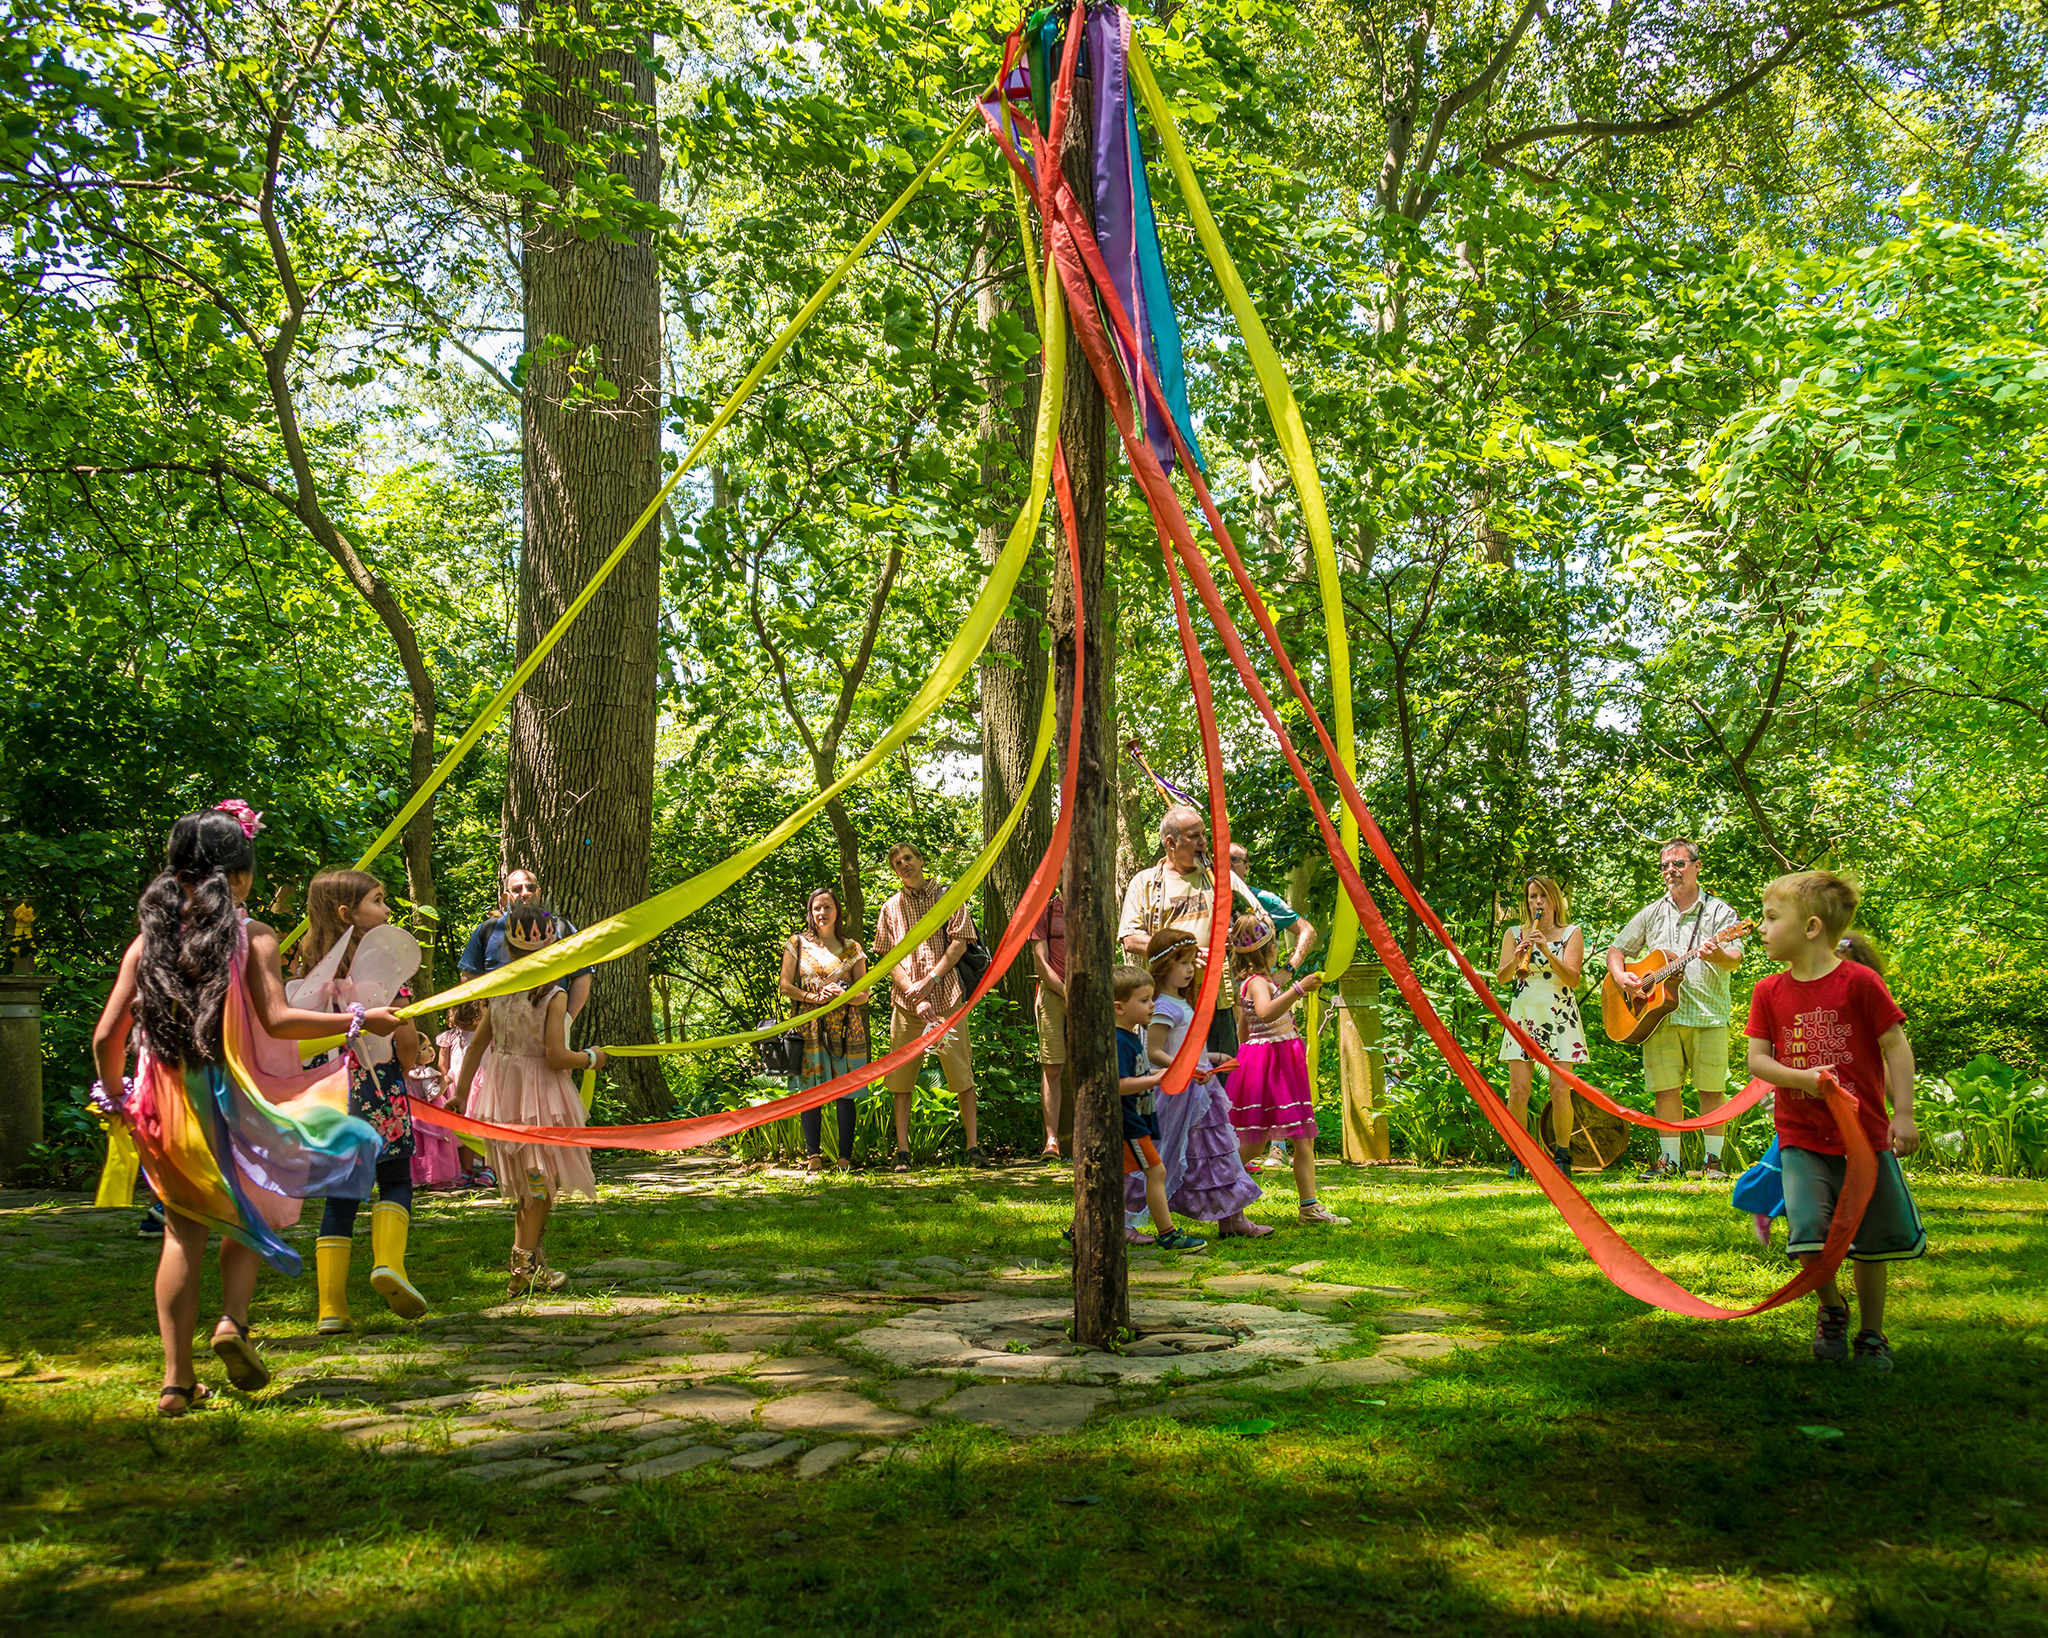 Children dancing around a maypole in the Enchanted Woods.